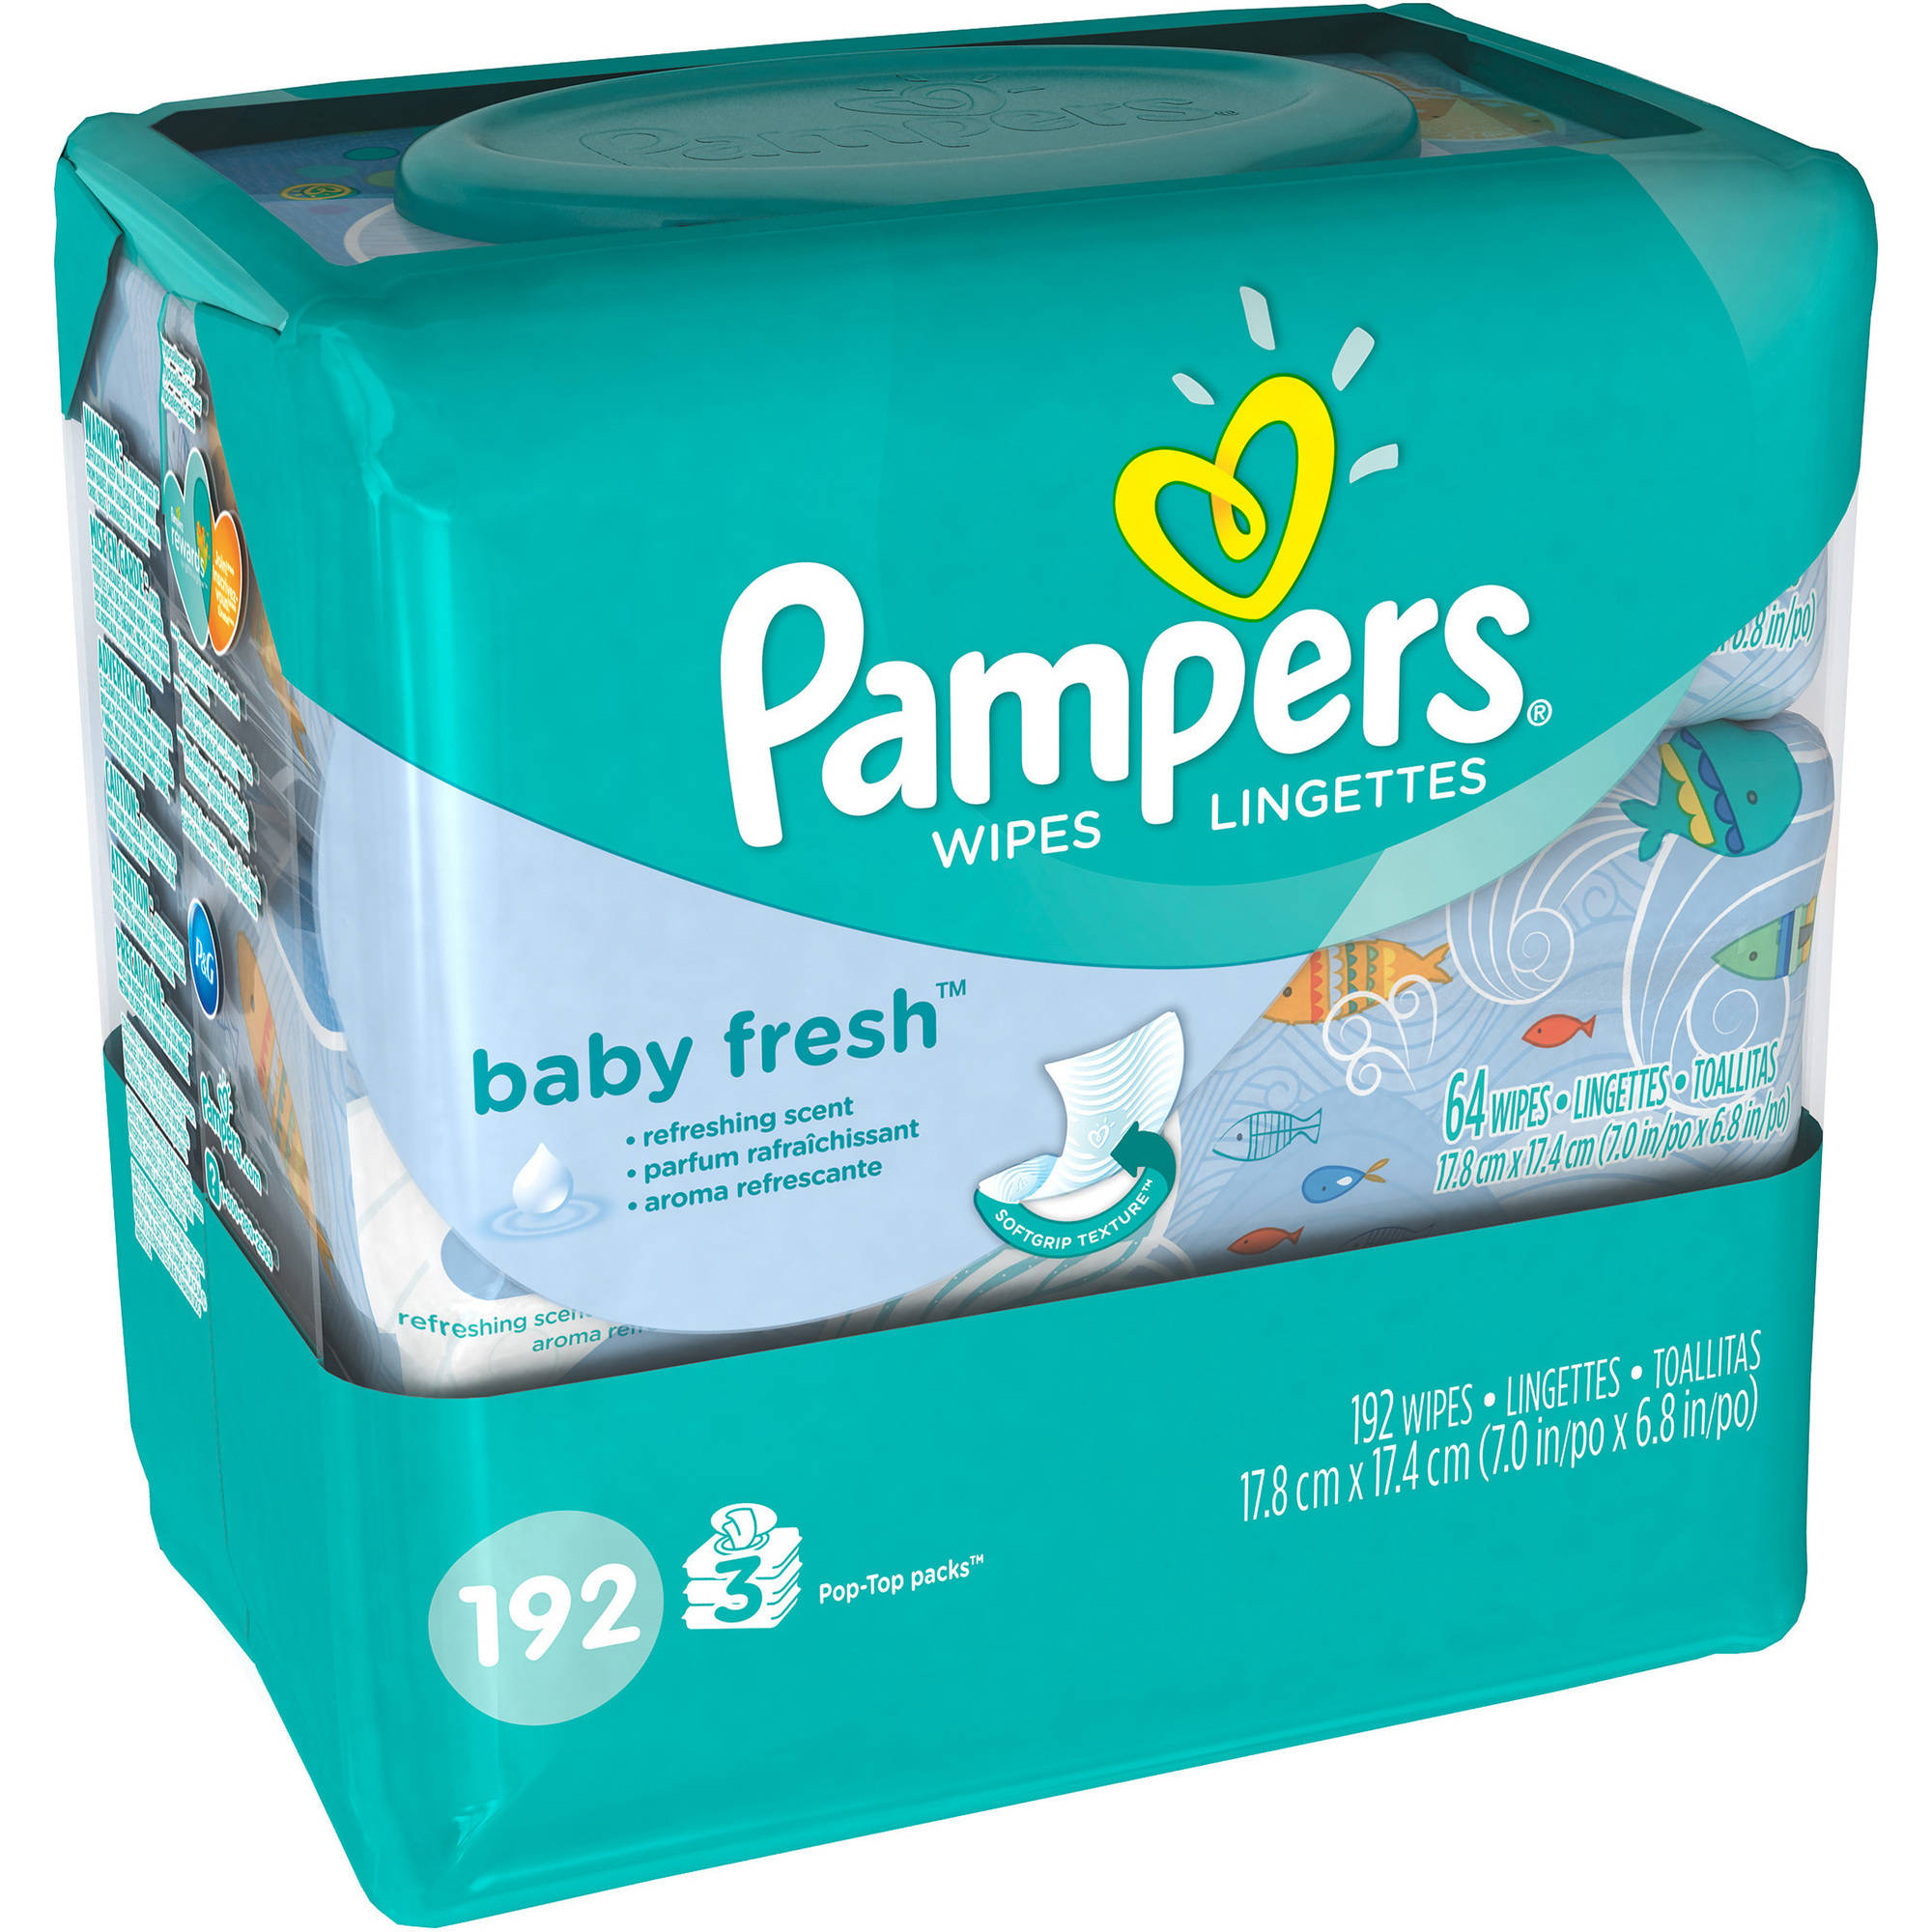 Pampers Baby Fresh Wipes, 192 Wipes